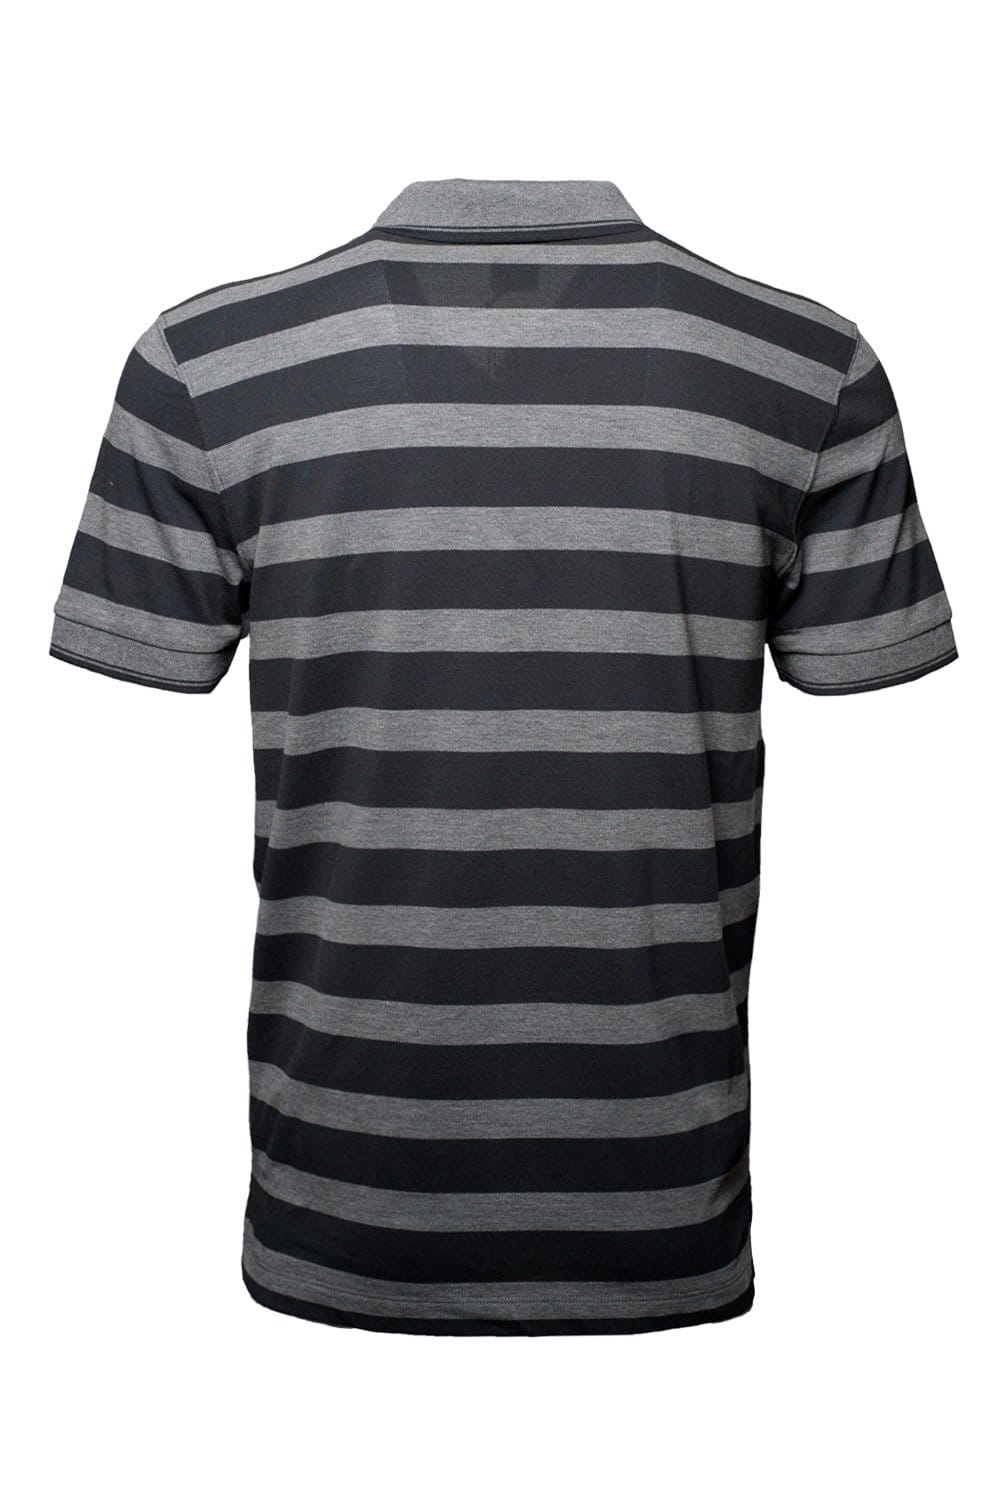 Hugo boss black regular fit stripe polo t shirt in blue for Red blue striped shirt